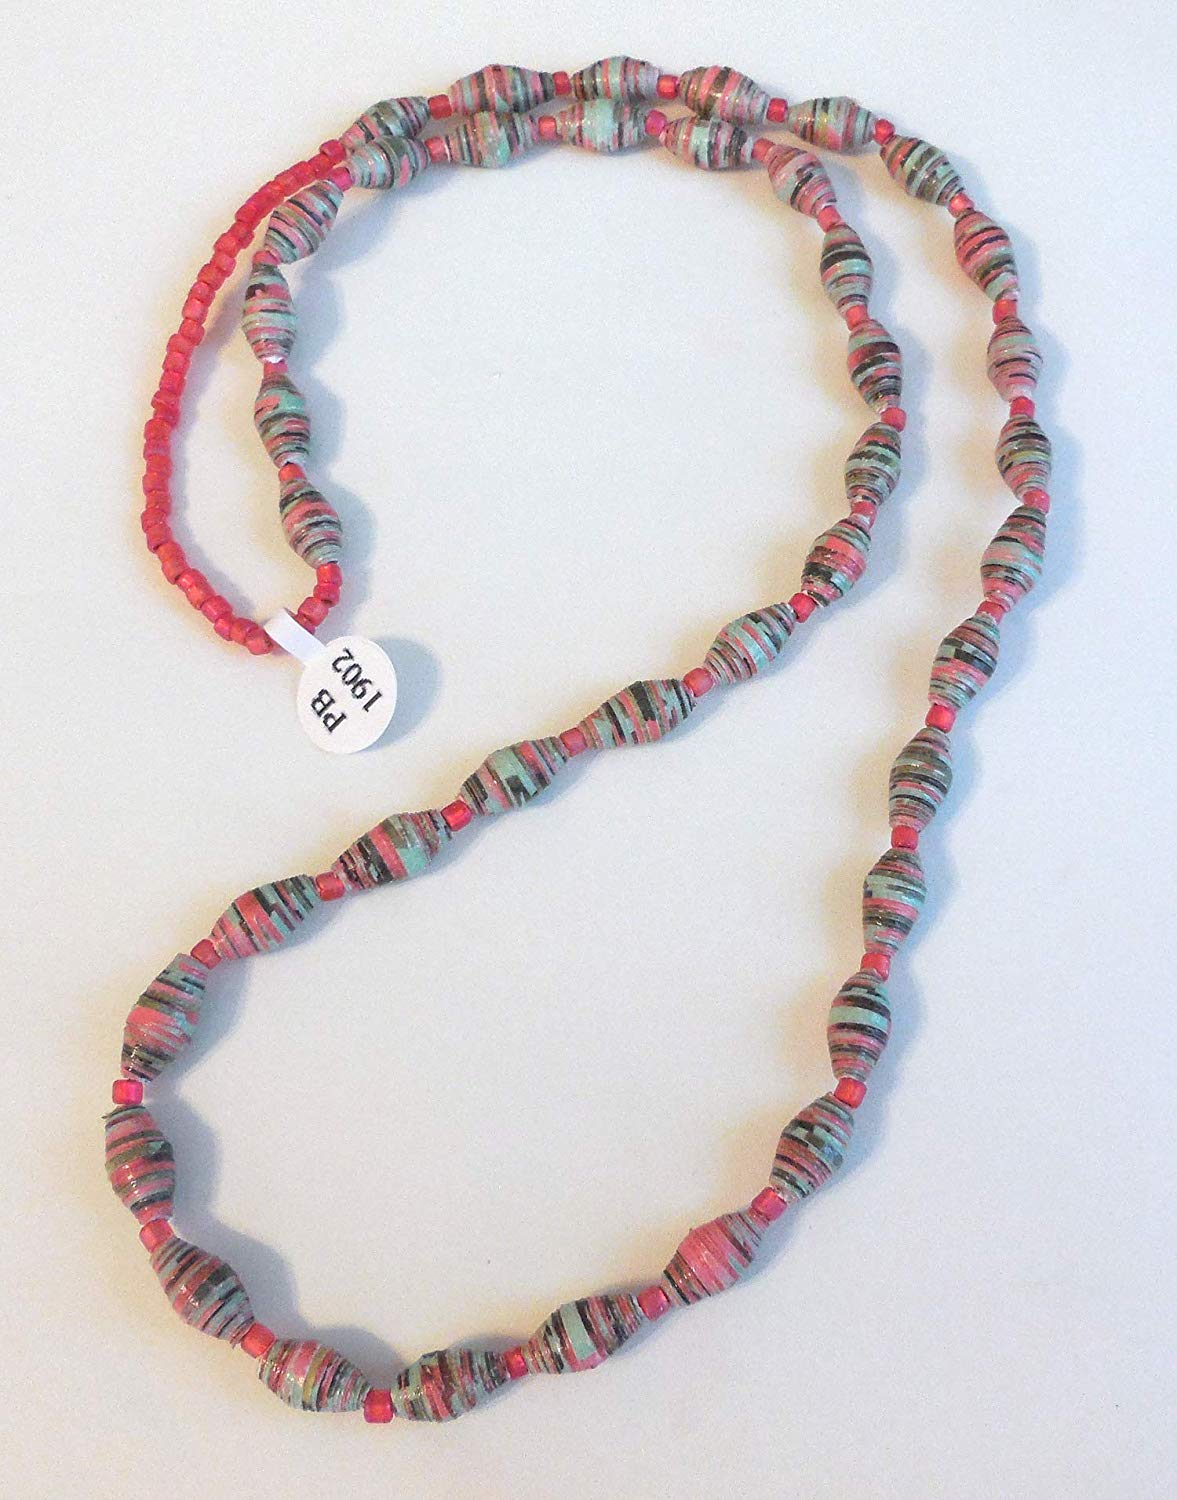 Paper Bead Necklace Handmade PB 1902